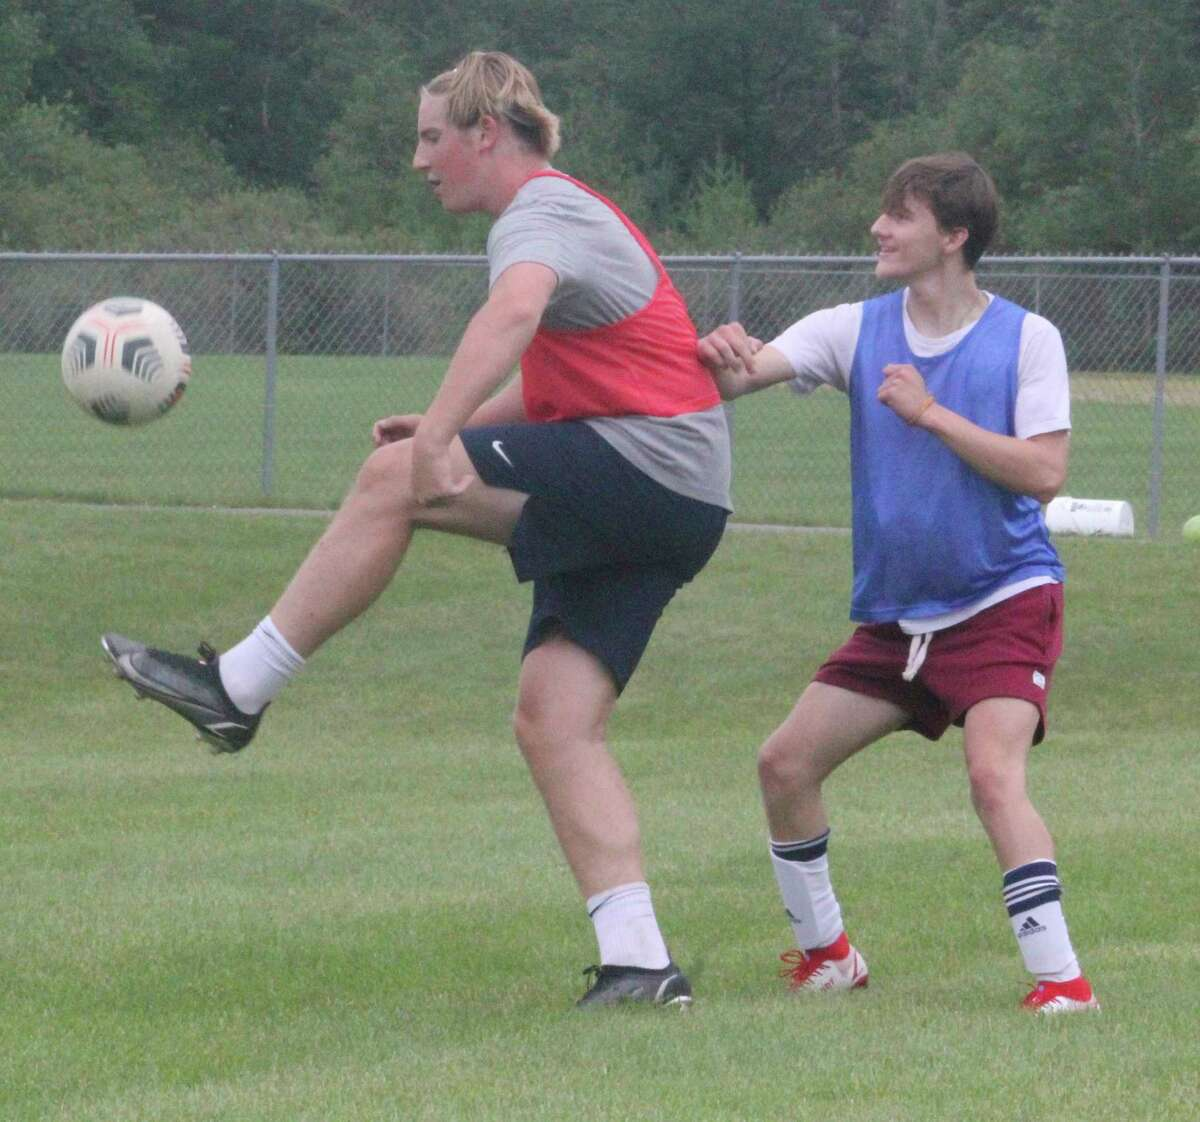 Big Rapids' Brady Fox (left) works with the ball on Wednesday during an open field session at the practice field. (Pioneer photo/John Raffel)